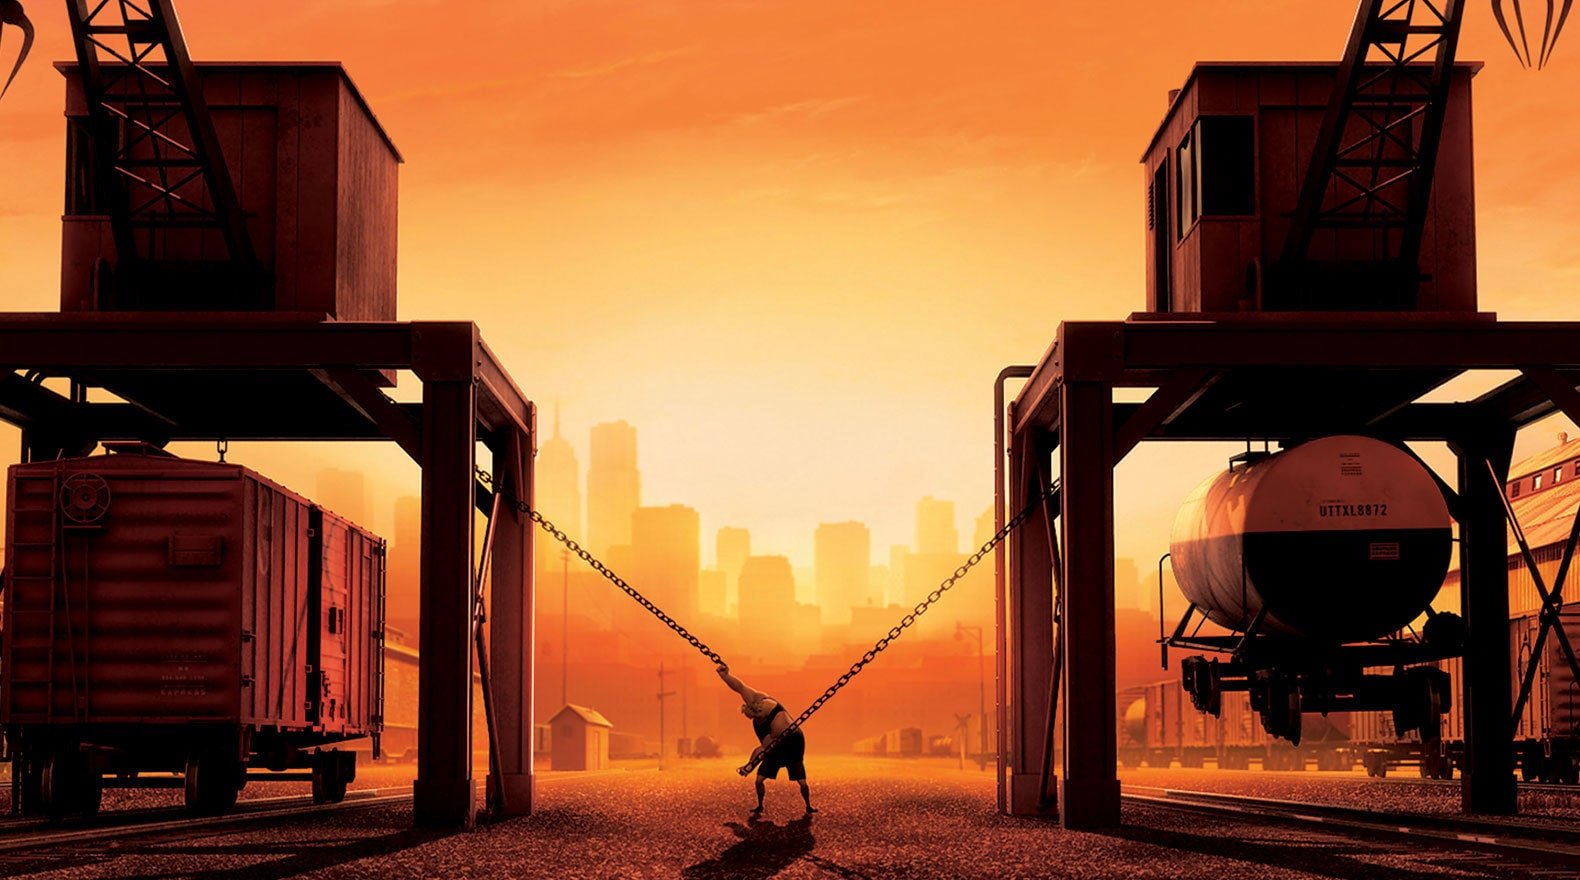 Mr. Incredible's workouts can involve freight trains.